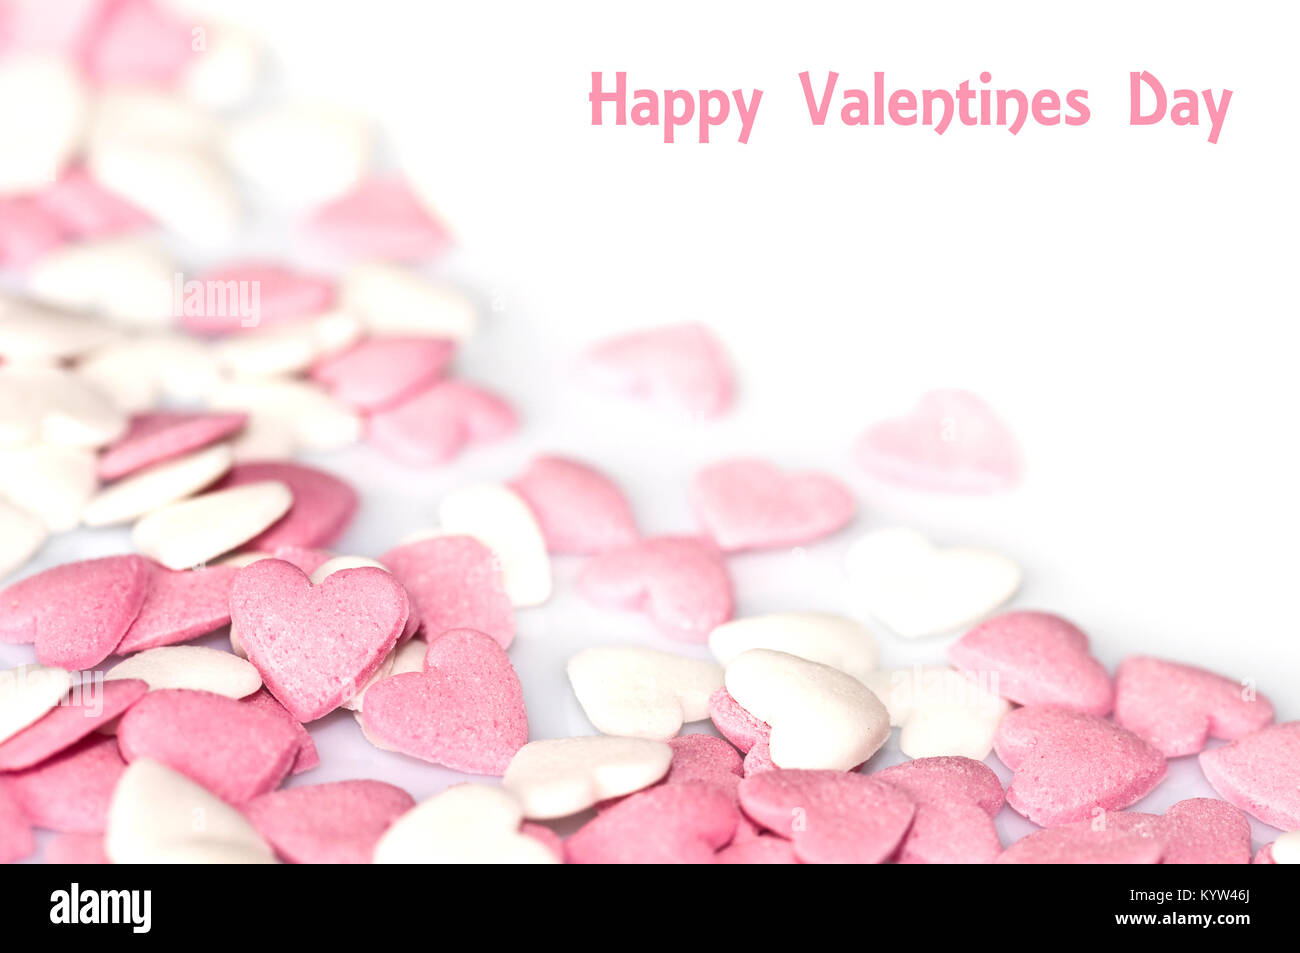 Valentines Card Pink Sugar Hearts On White Background Stock Photo